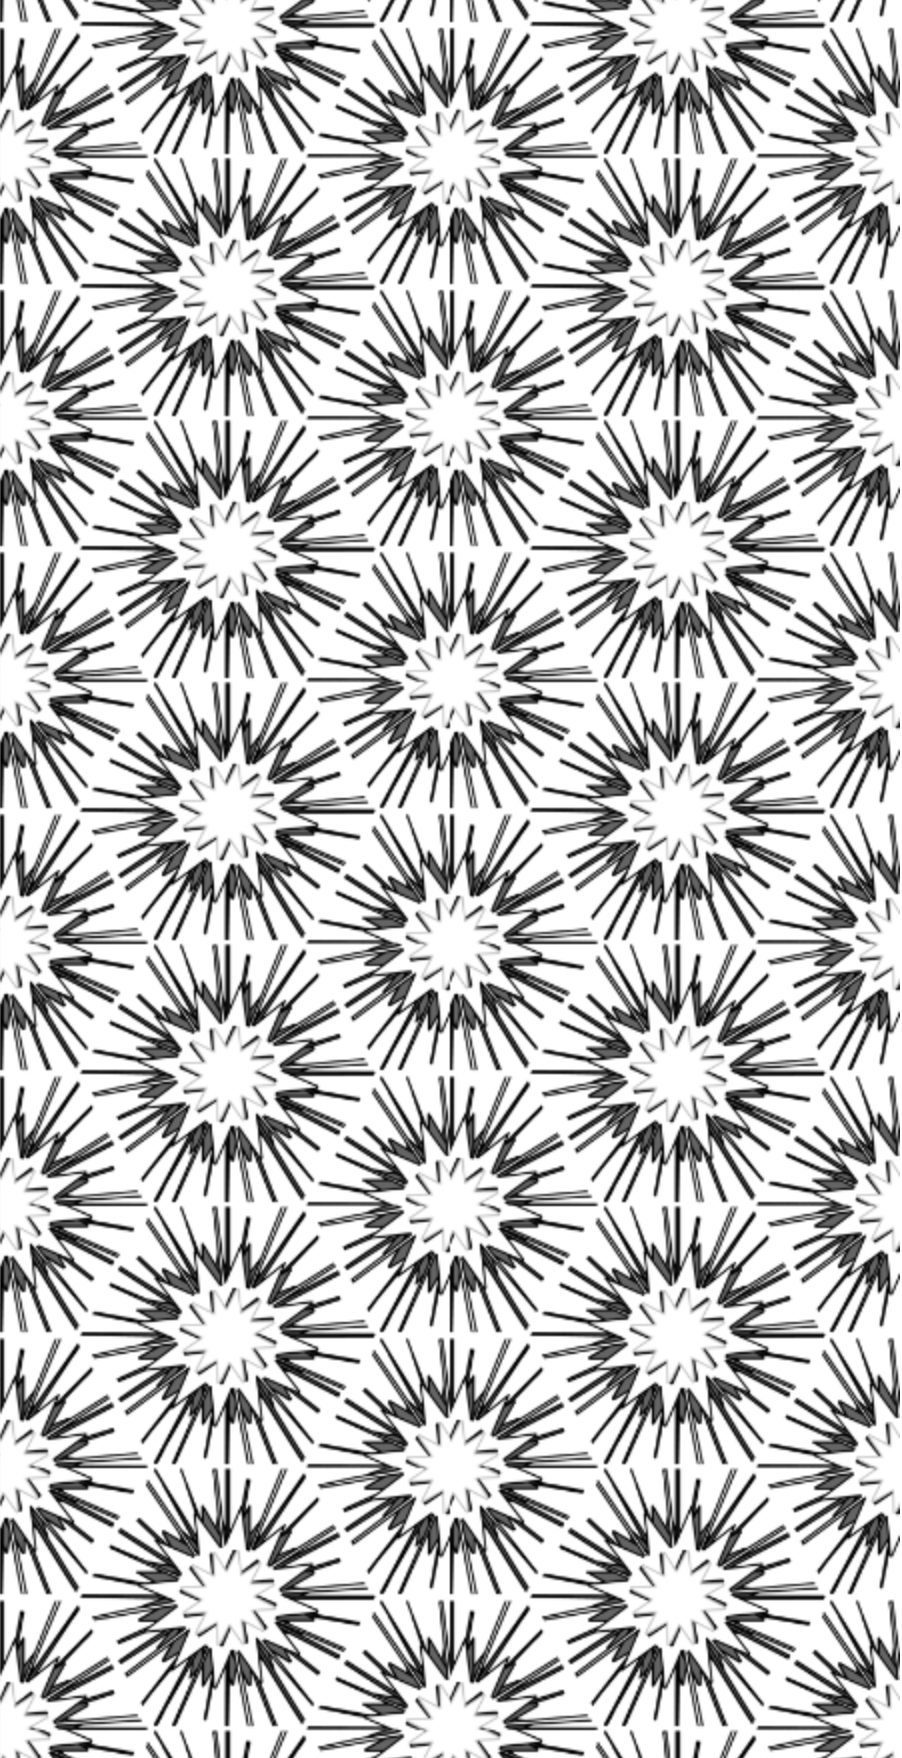 Black white wallpaper, black hexagon wallpaper, hexagon wallpaper, black star wallpaper, boho wallpaper, black white decor wallpaper, wallpaper for black white decor